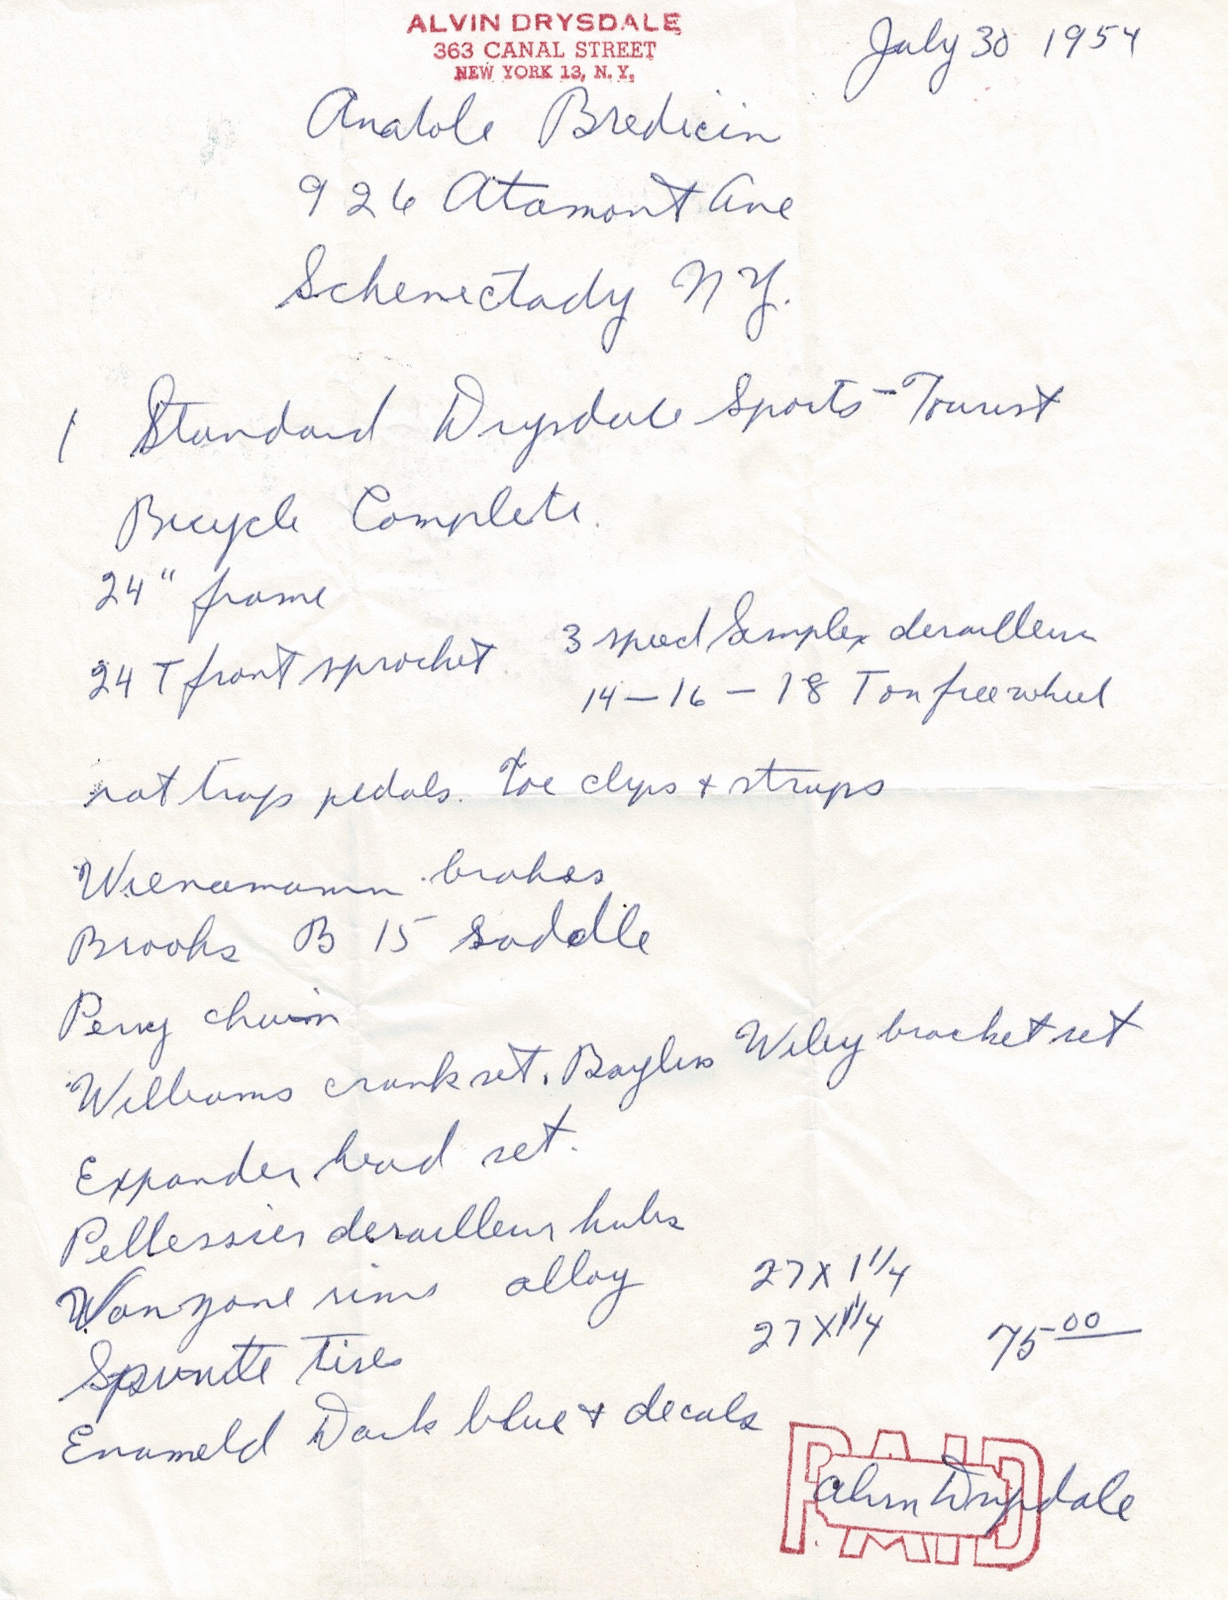 Alvin Drysdale Build Sheet 7-30-1954